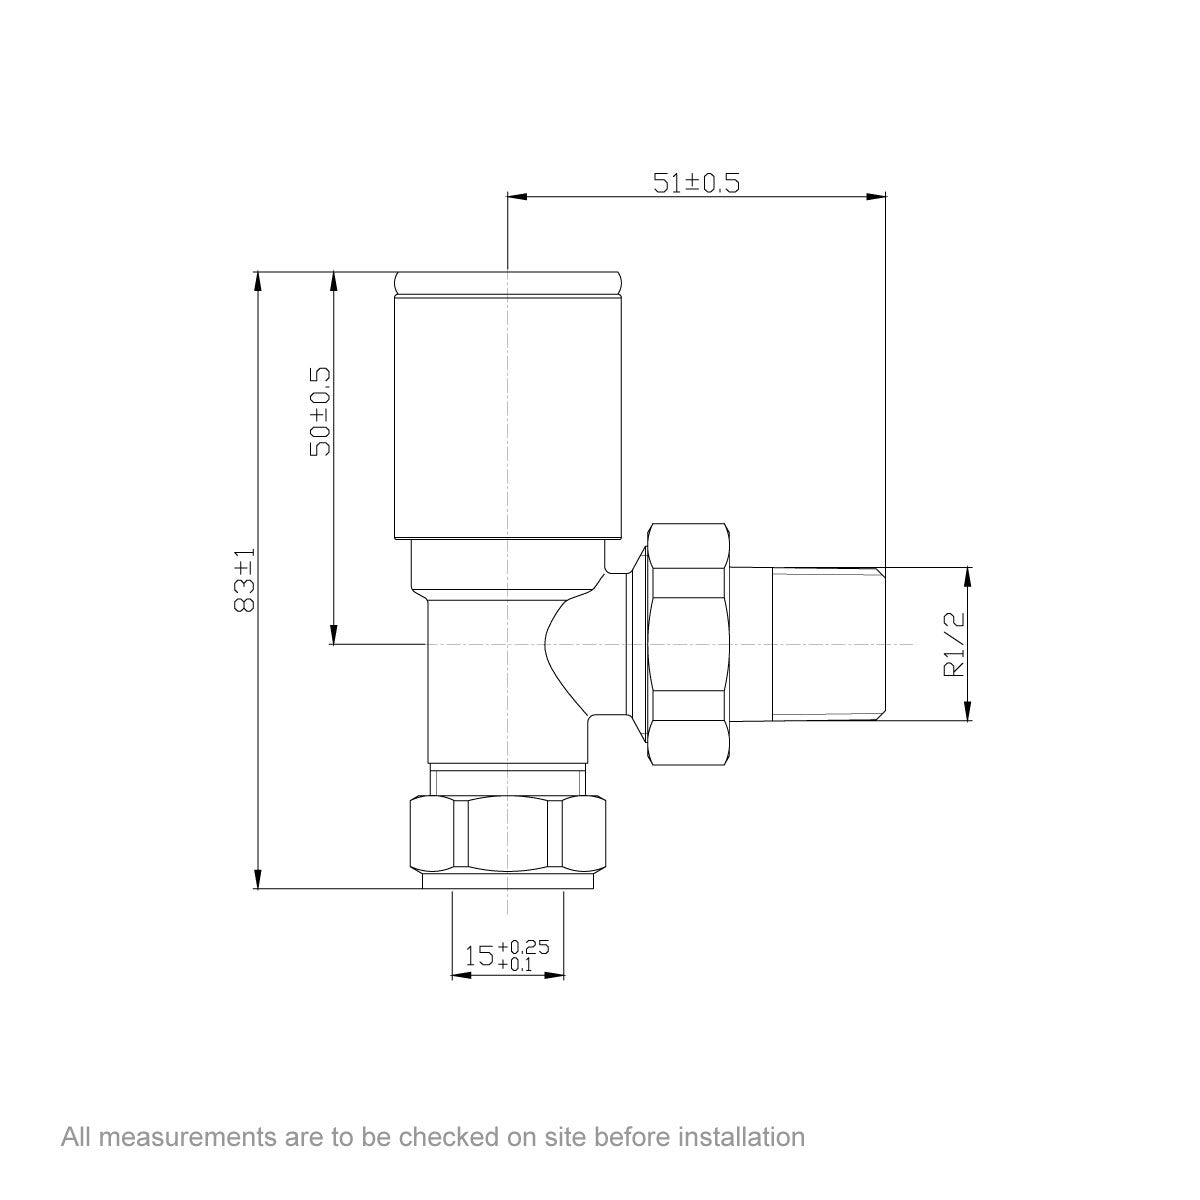 Dimensions for Orchard angled radiator valves